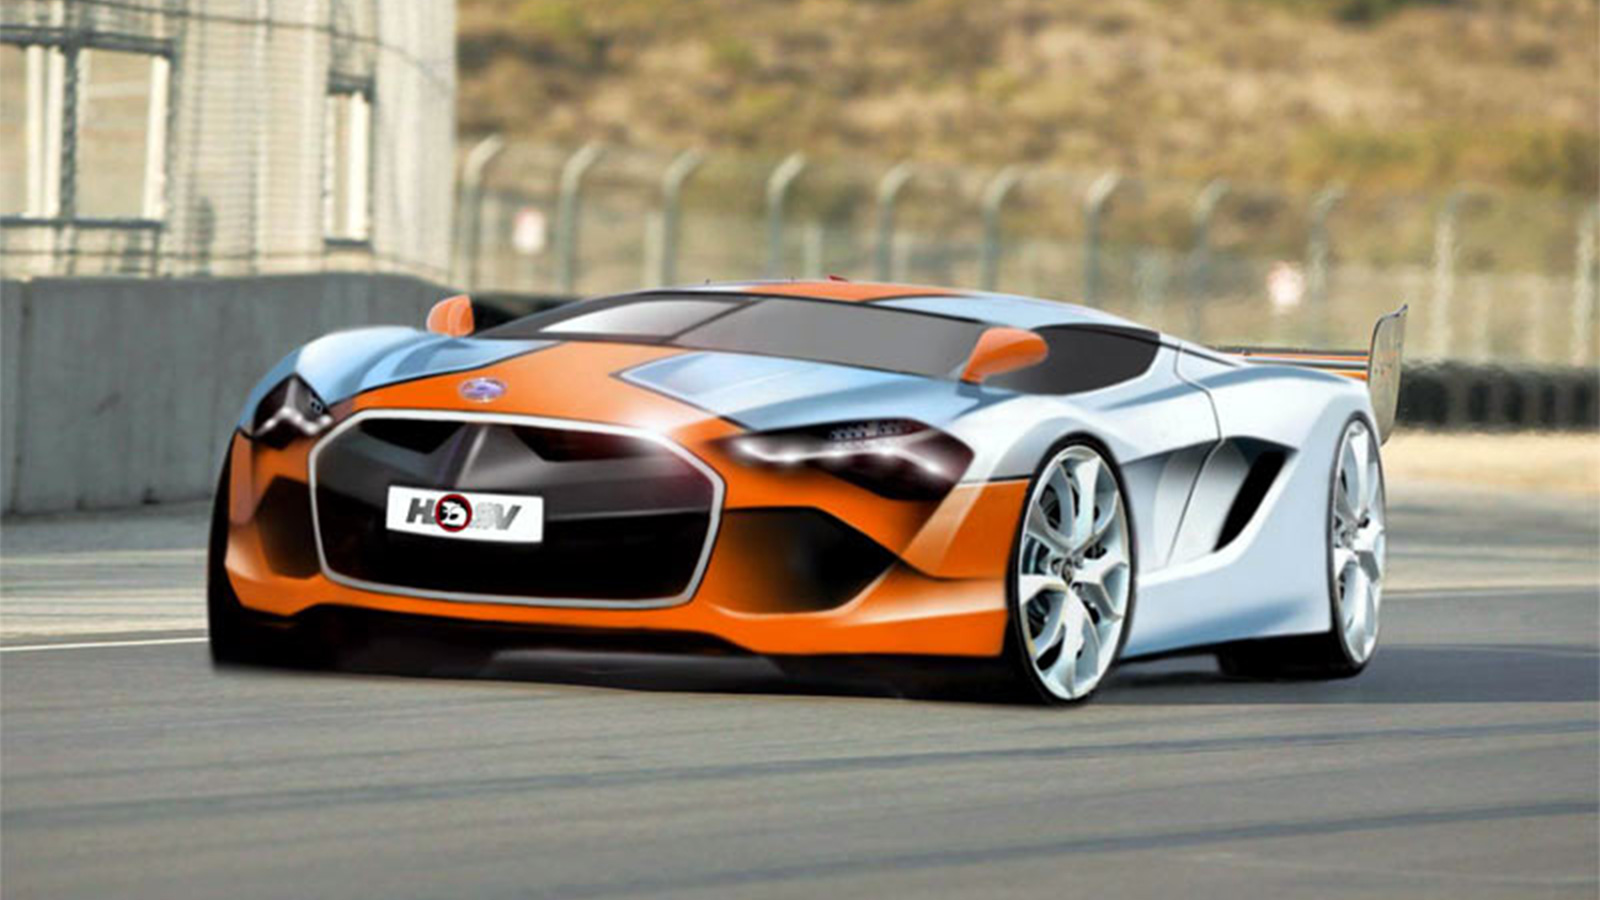 A prototype 2015 Holden Special Vehicles Hybrid, produced by Julian Quincey using Autodesk Alias Design Studio software.